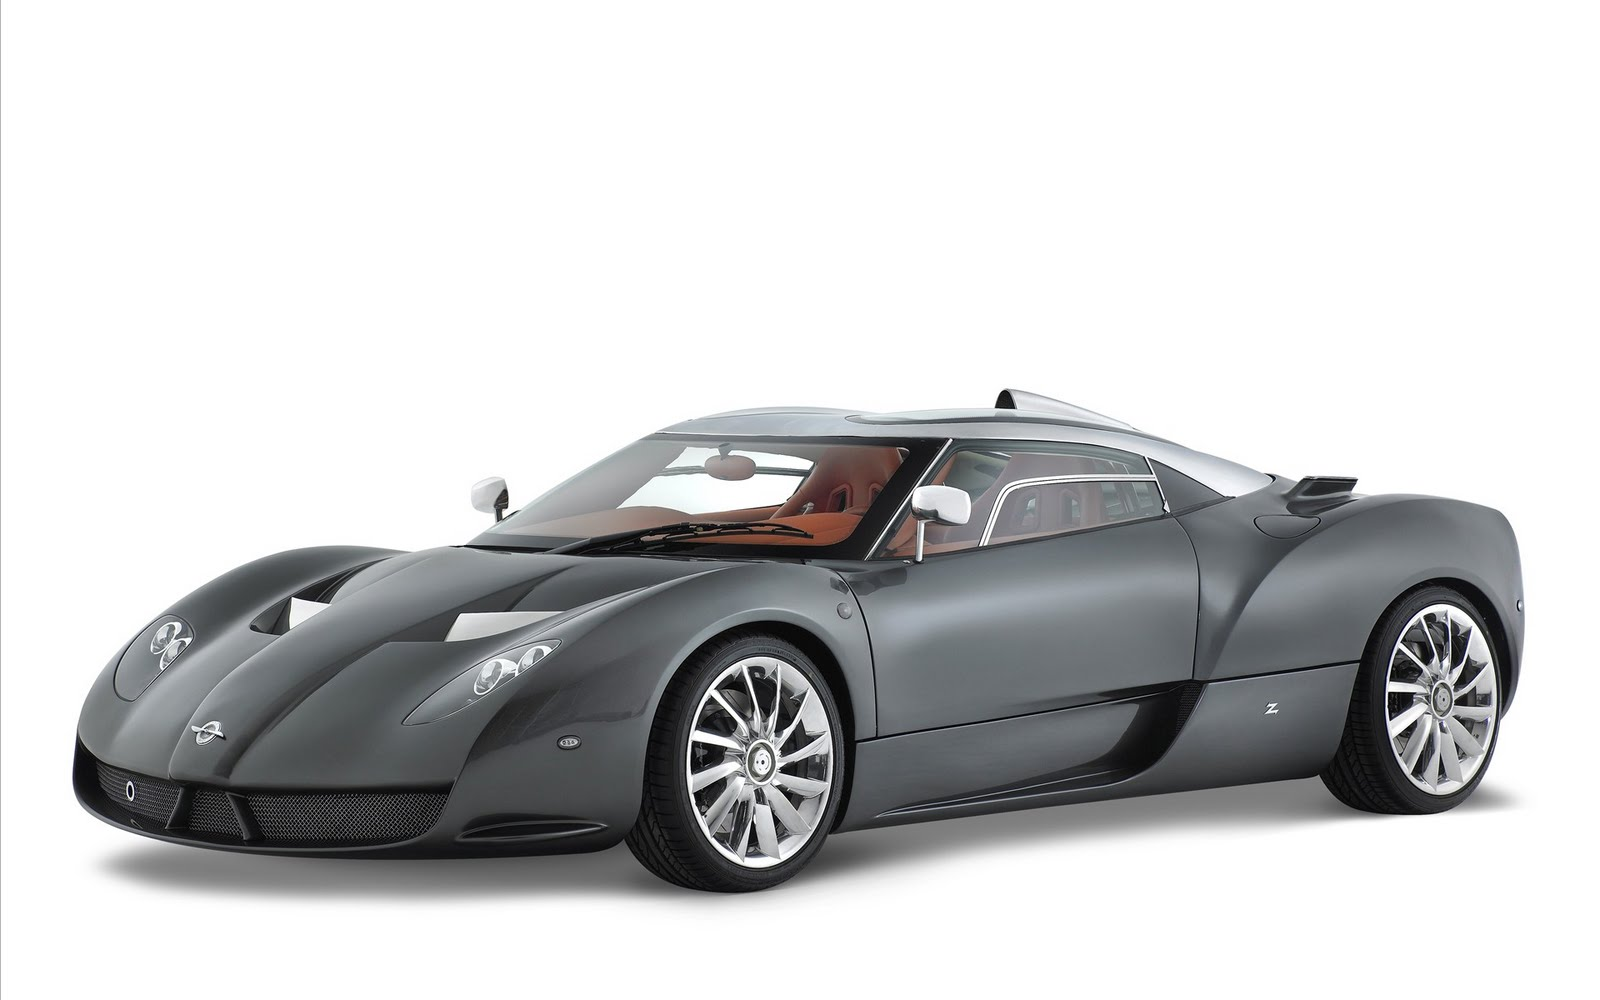 https://3.bp.blogspot.com/-x9-nvvdoqNU/Tlyrys89NuI/AAAAAAAAAEk/fwWzP8XGwXY/s1600/spyker-cars-wallpapers+1080p.jpg